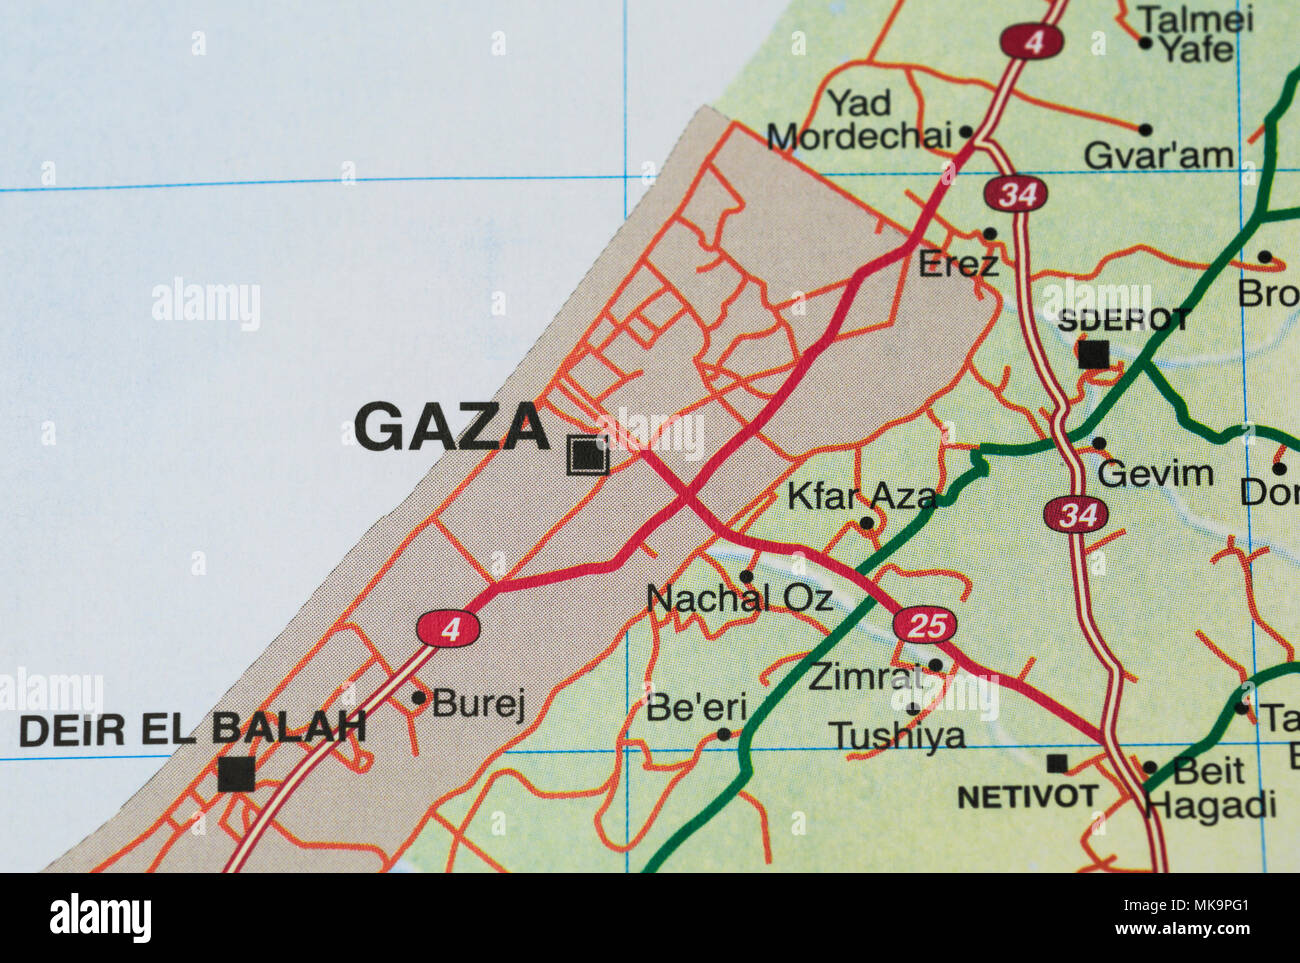 Gaza strip road map - Stock Image